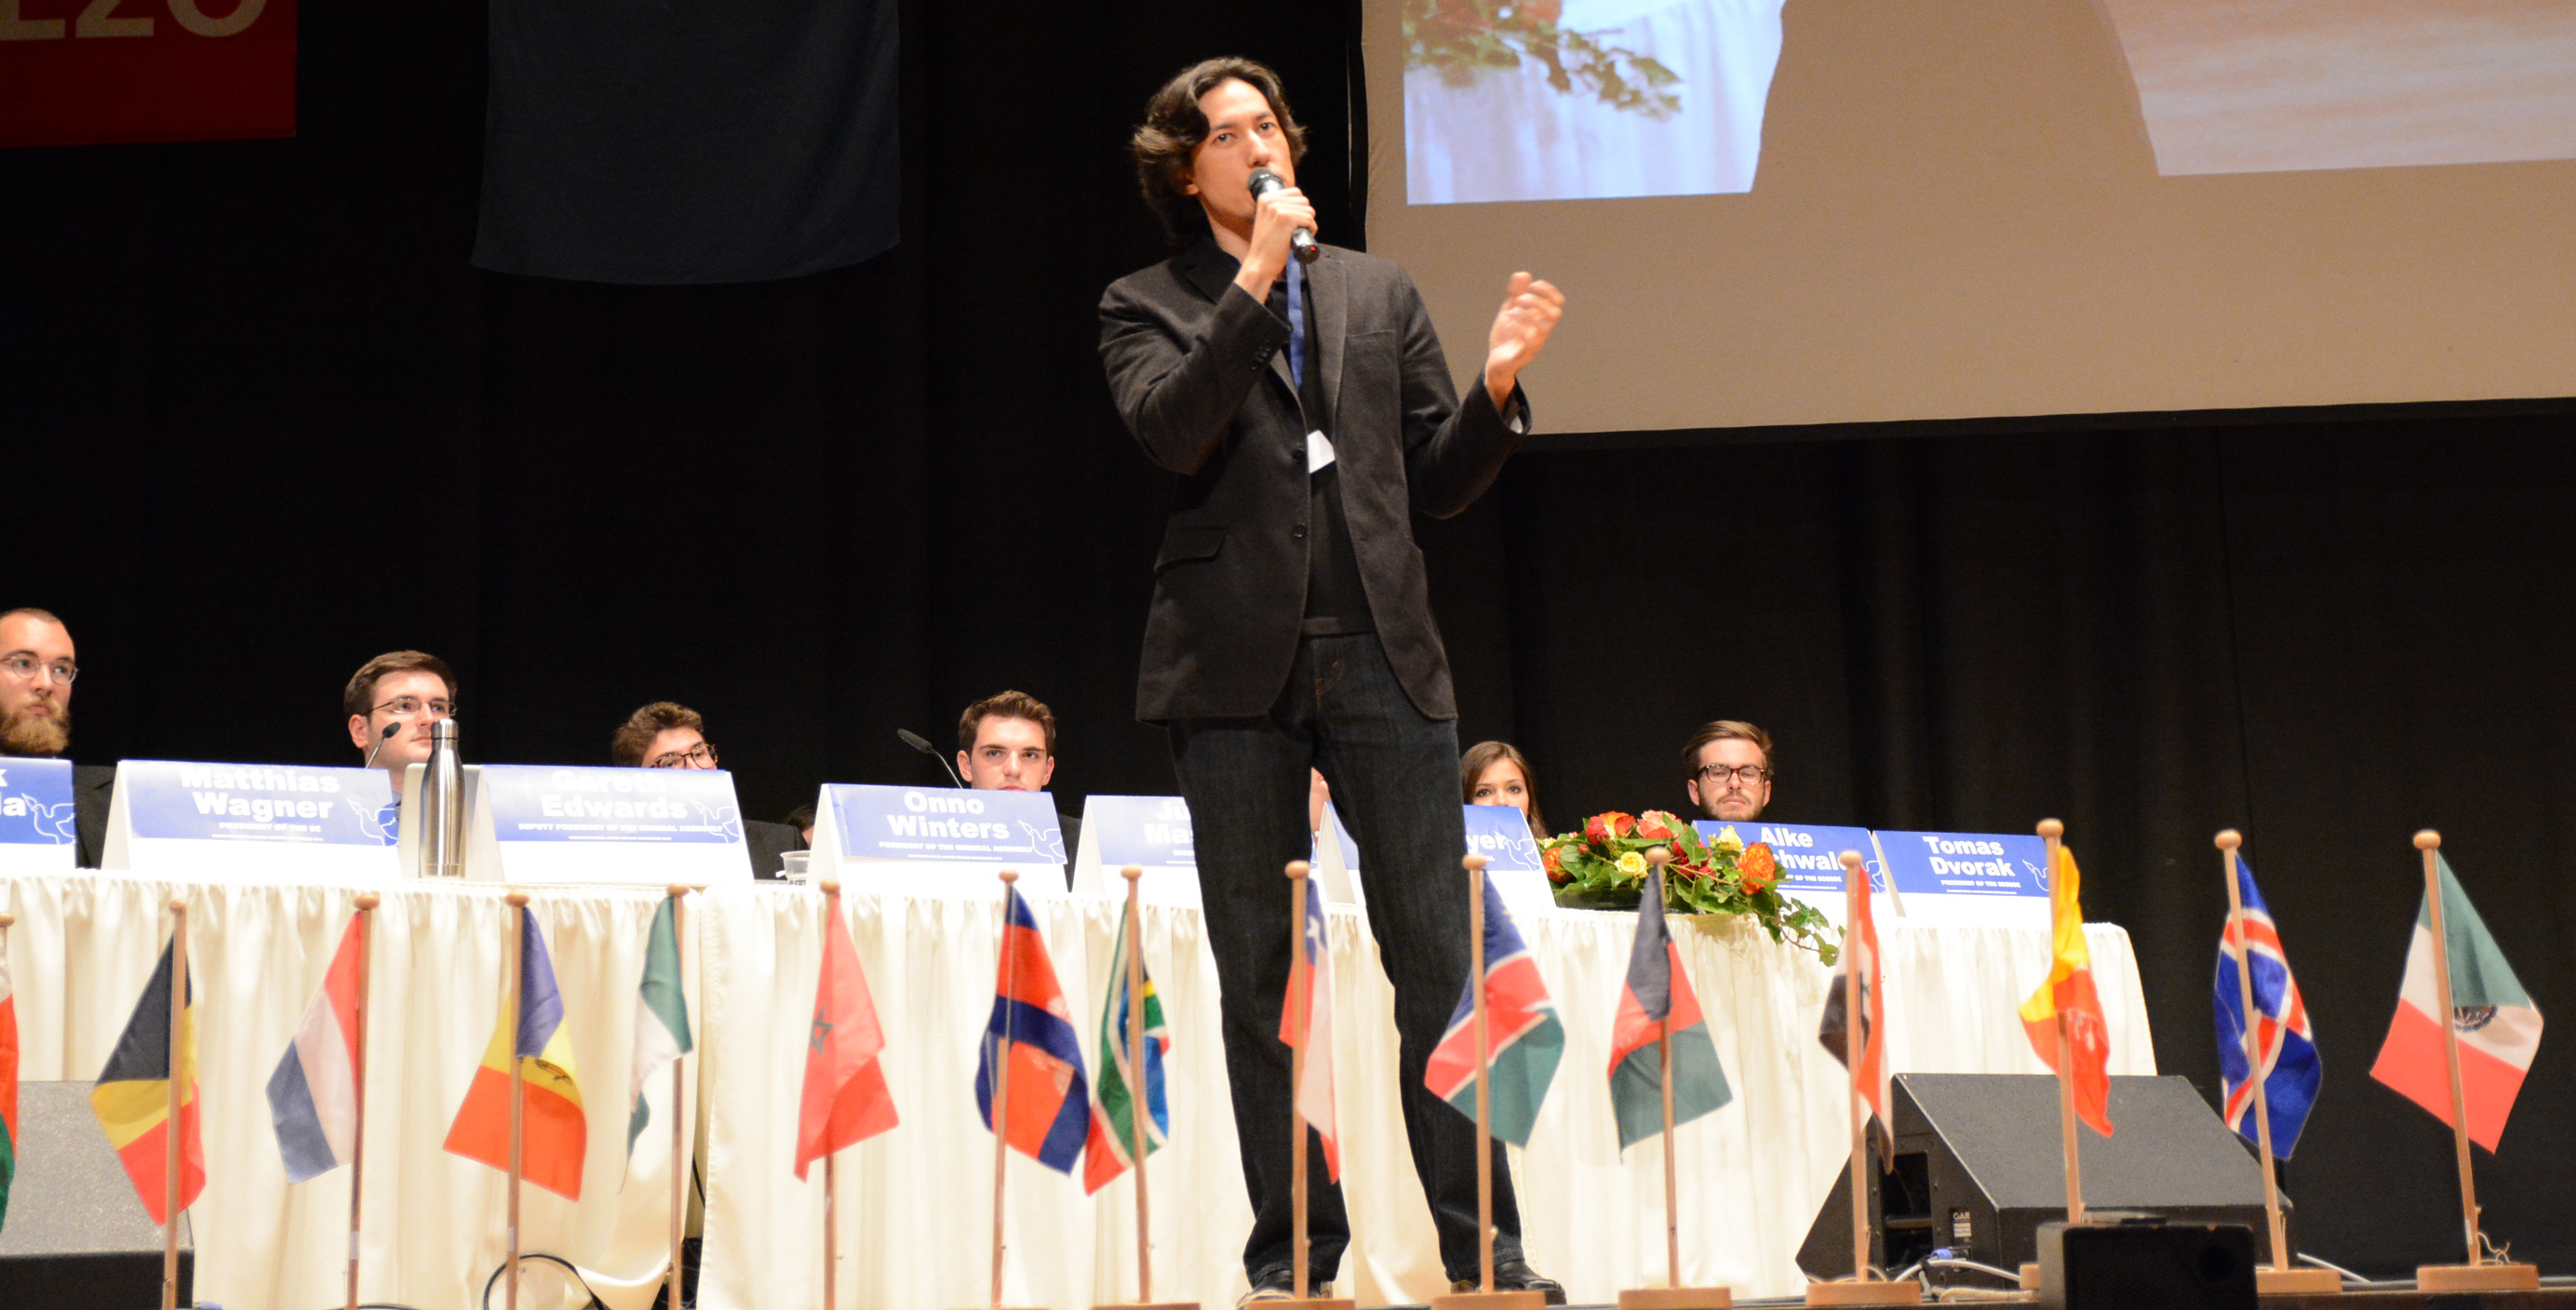 Paul K. Chappell at Oldenburg Model UN